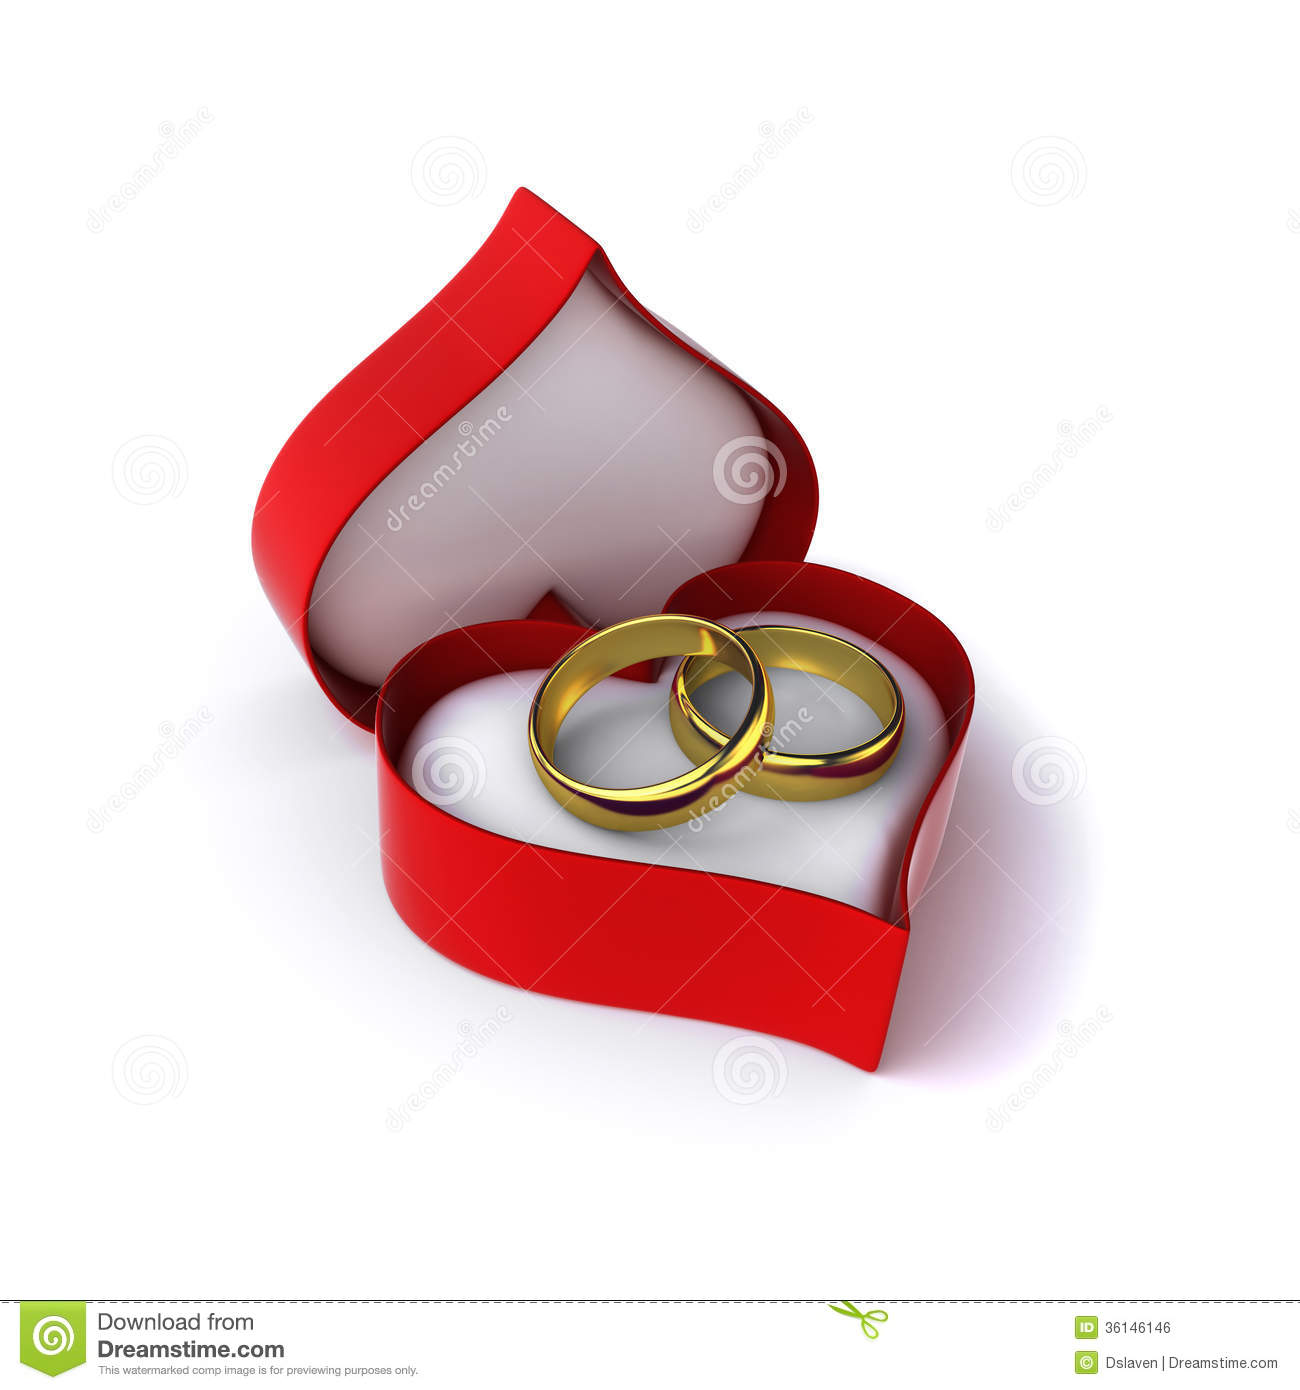 Wedding rings royalty free stock image image 36146146 for Heart shaped engagement ring box